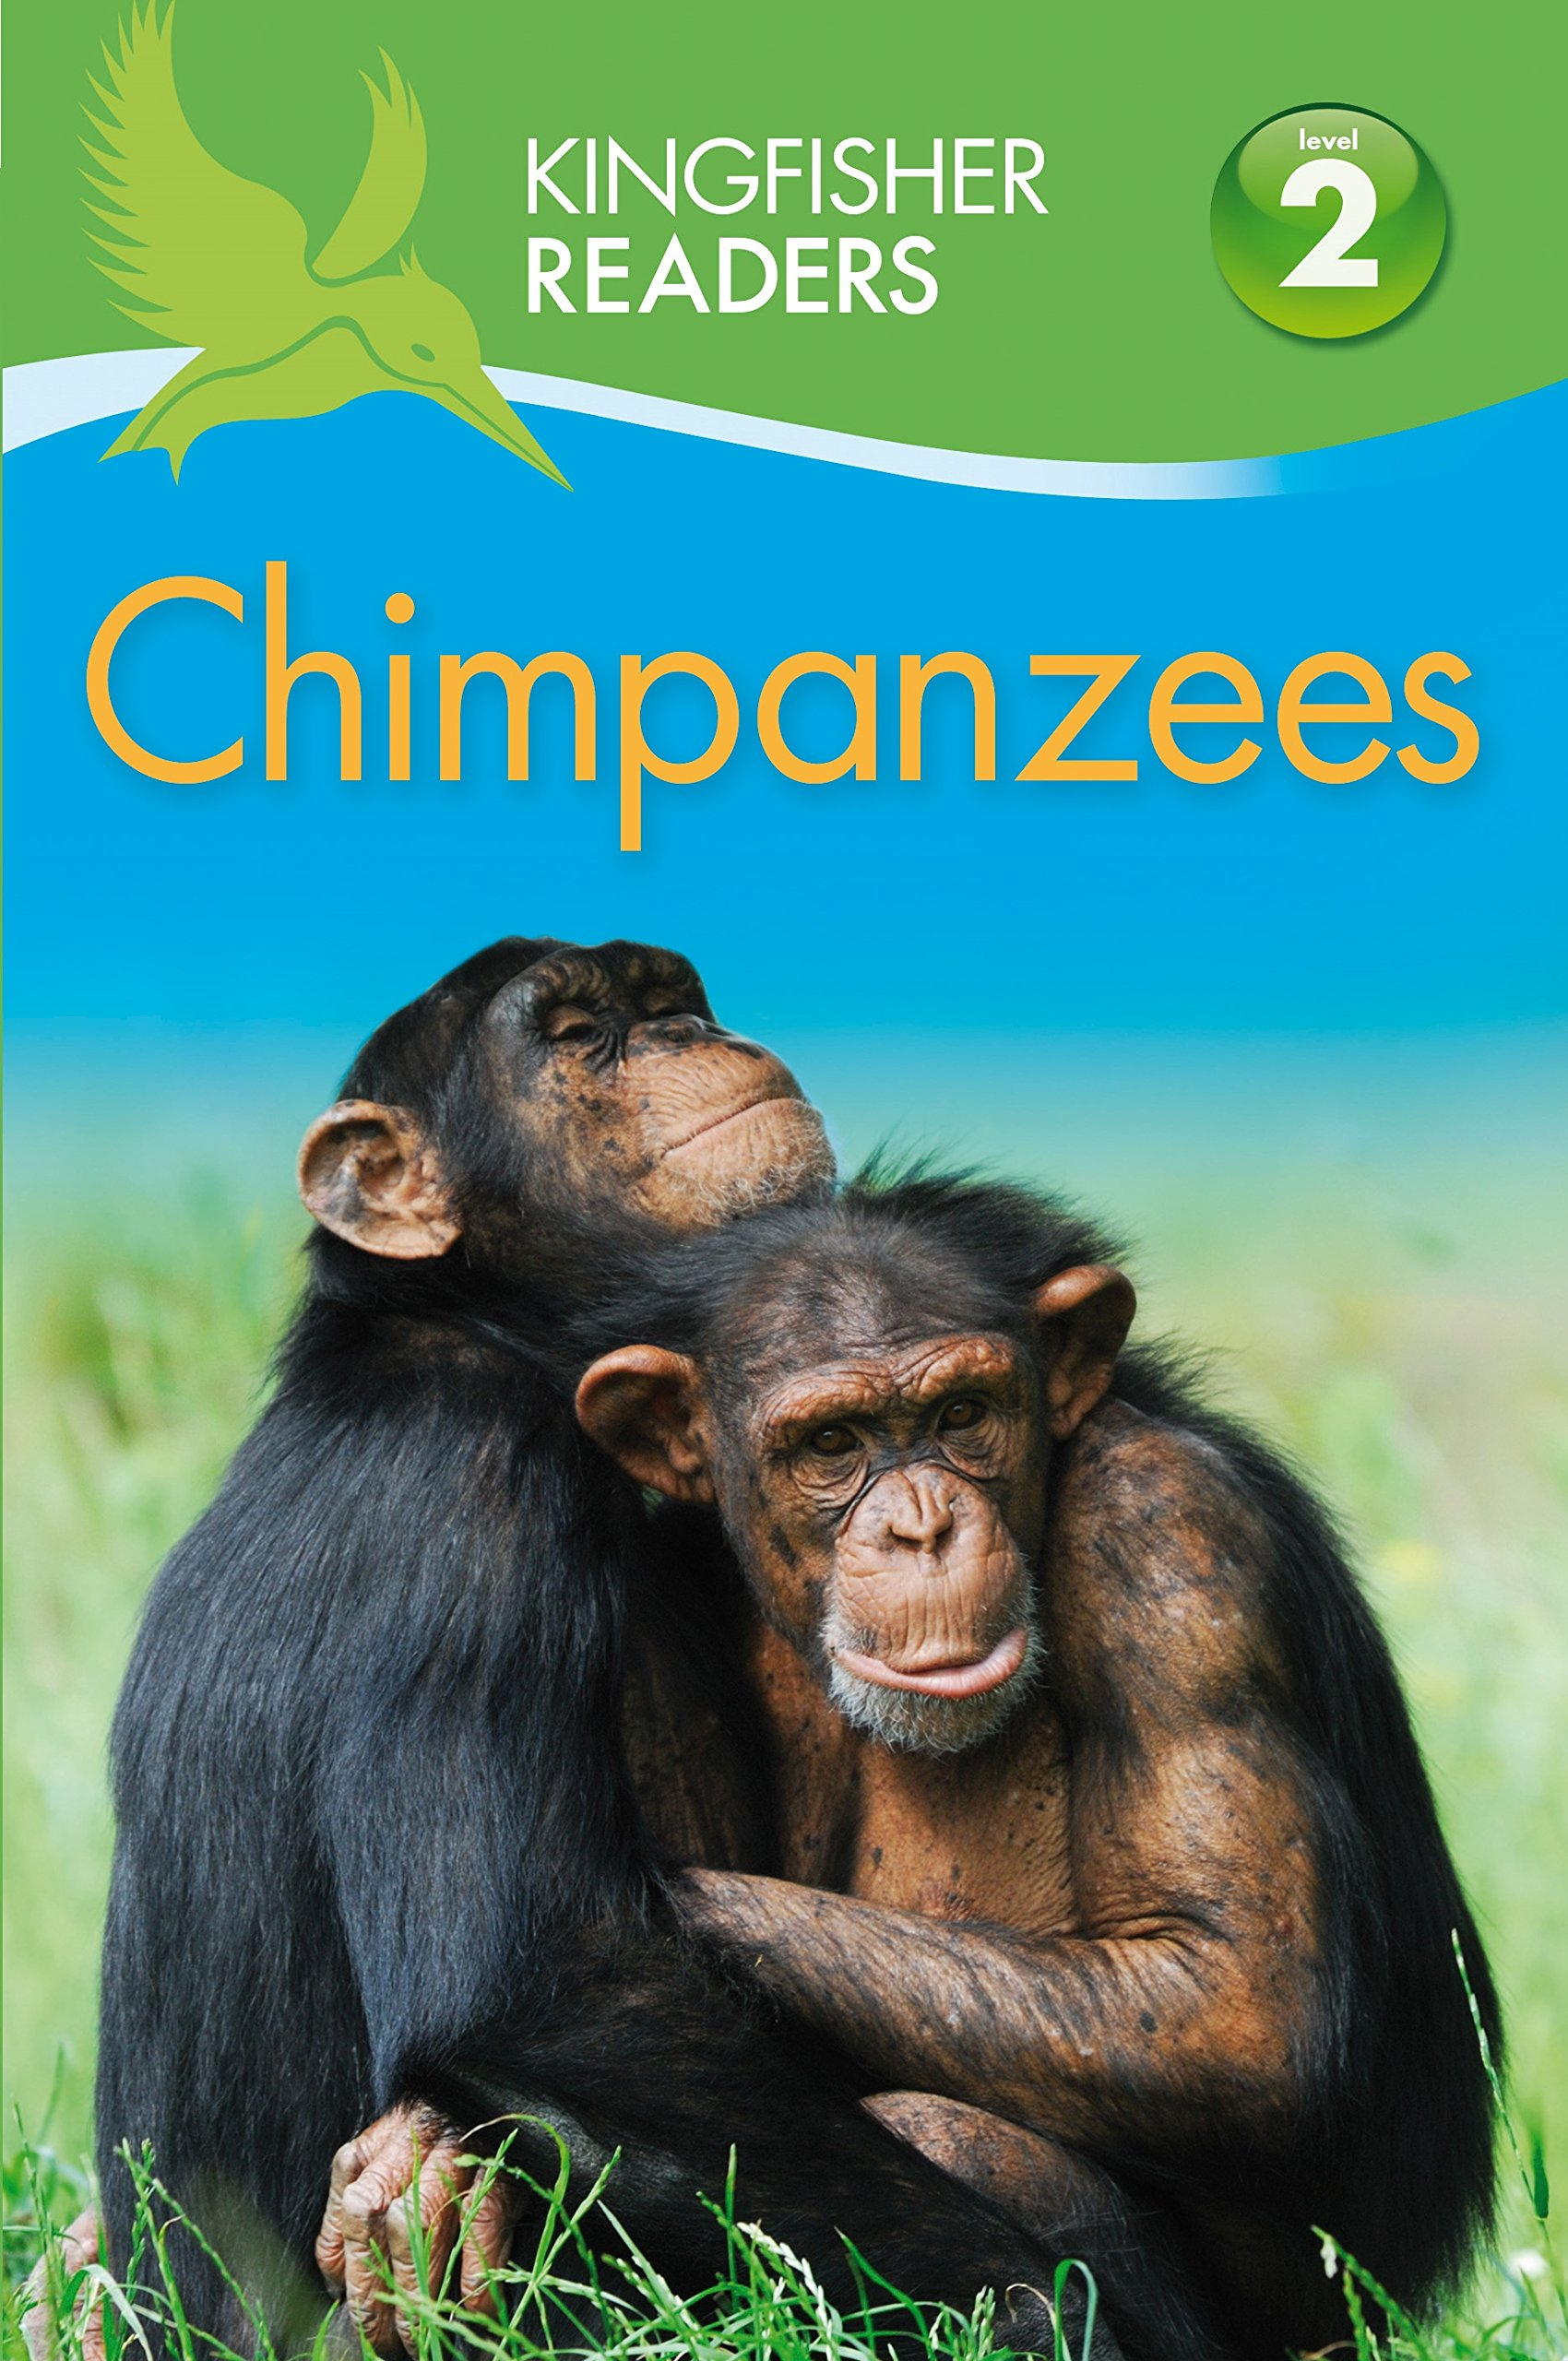 Kingfisher Readers: Chimpanzees (Level 2 Beginning to Read Alone) doug lemov reading reconsidered a practical guide to rigorous literacy instruction